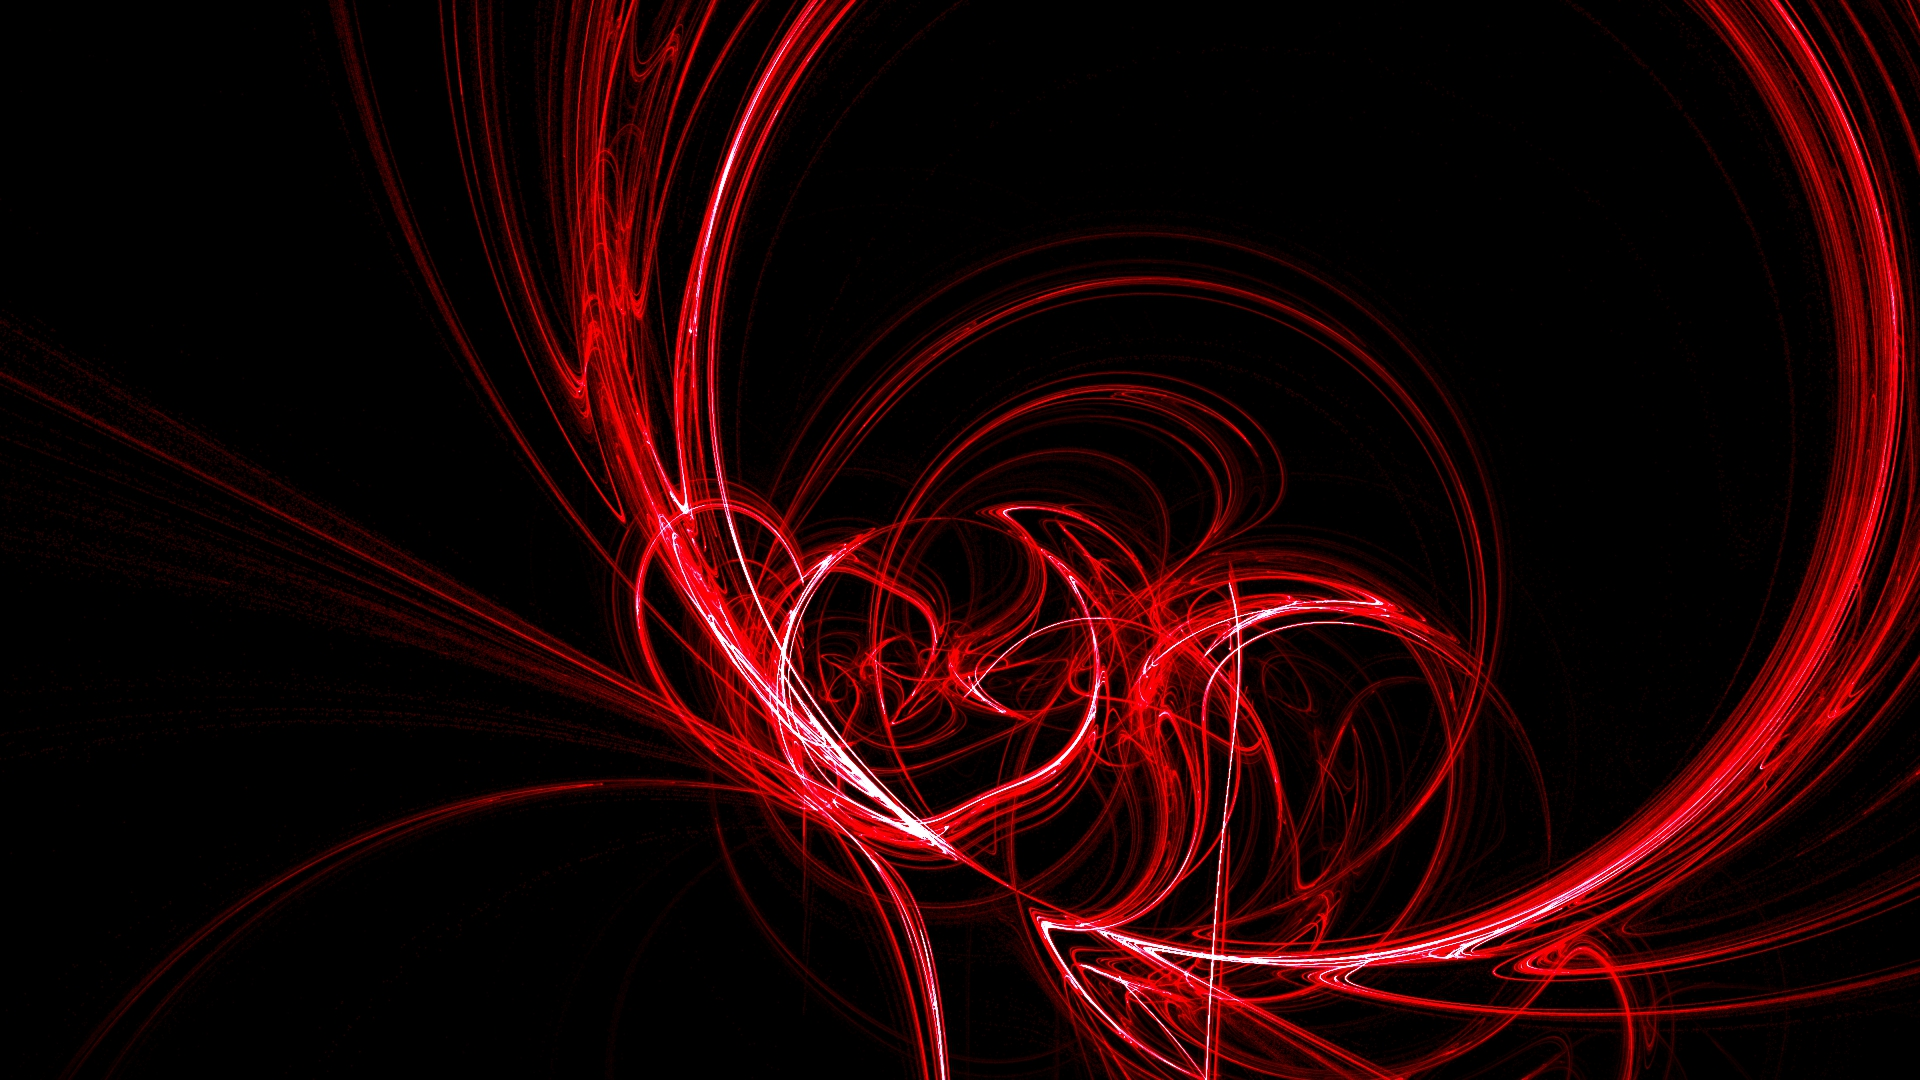 abstract wallpaper red images 1920x1080 1920x1080